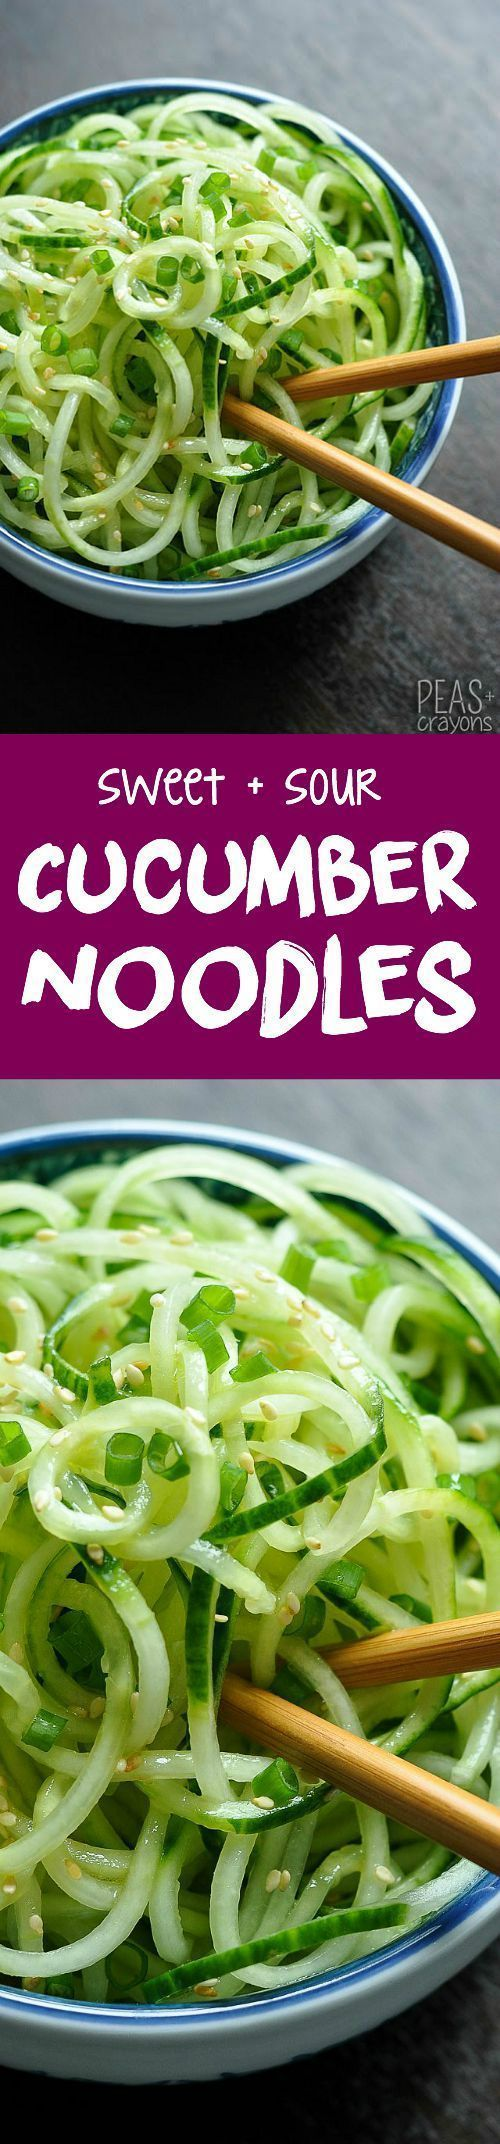 sweet and sour cucumber noodles